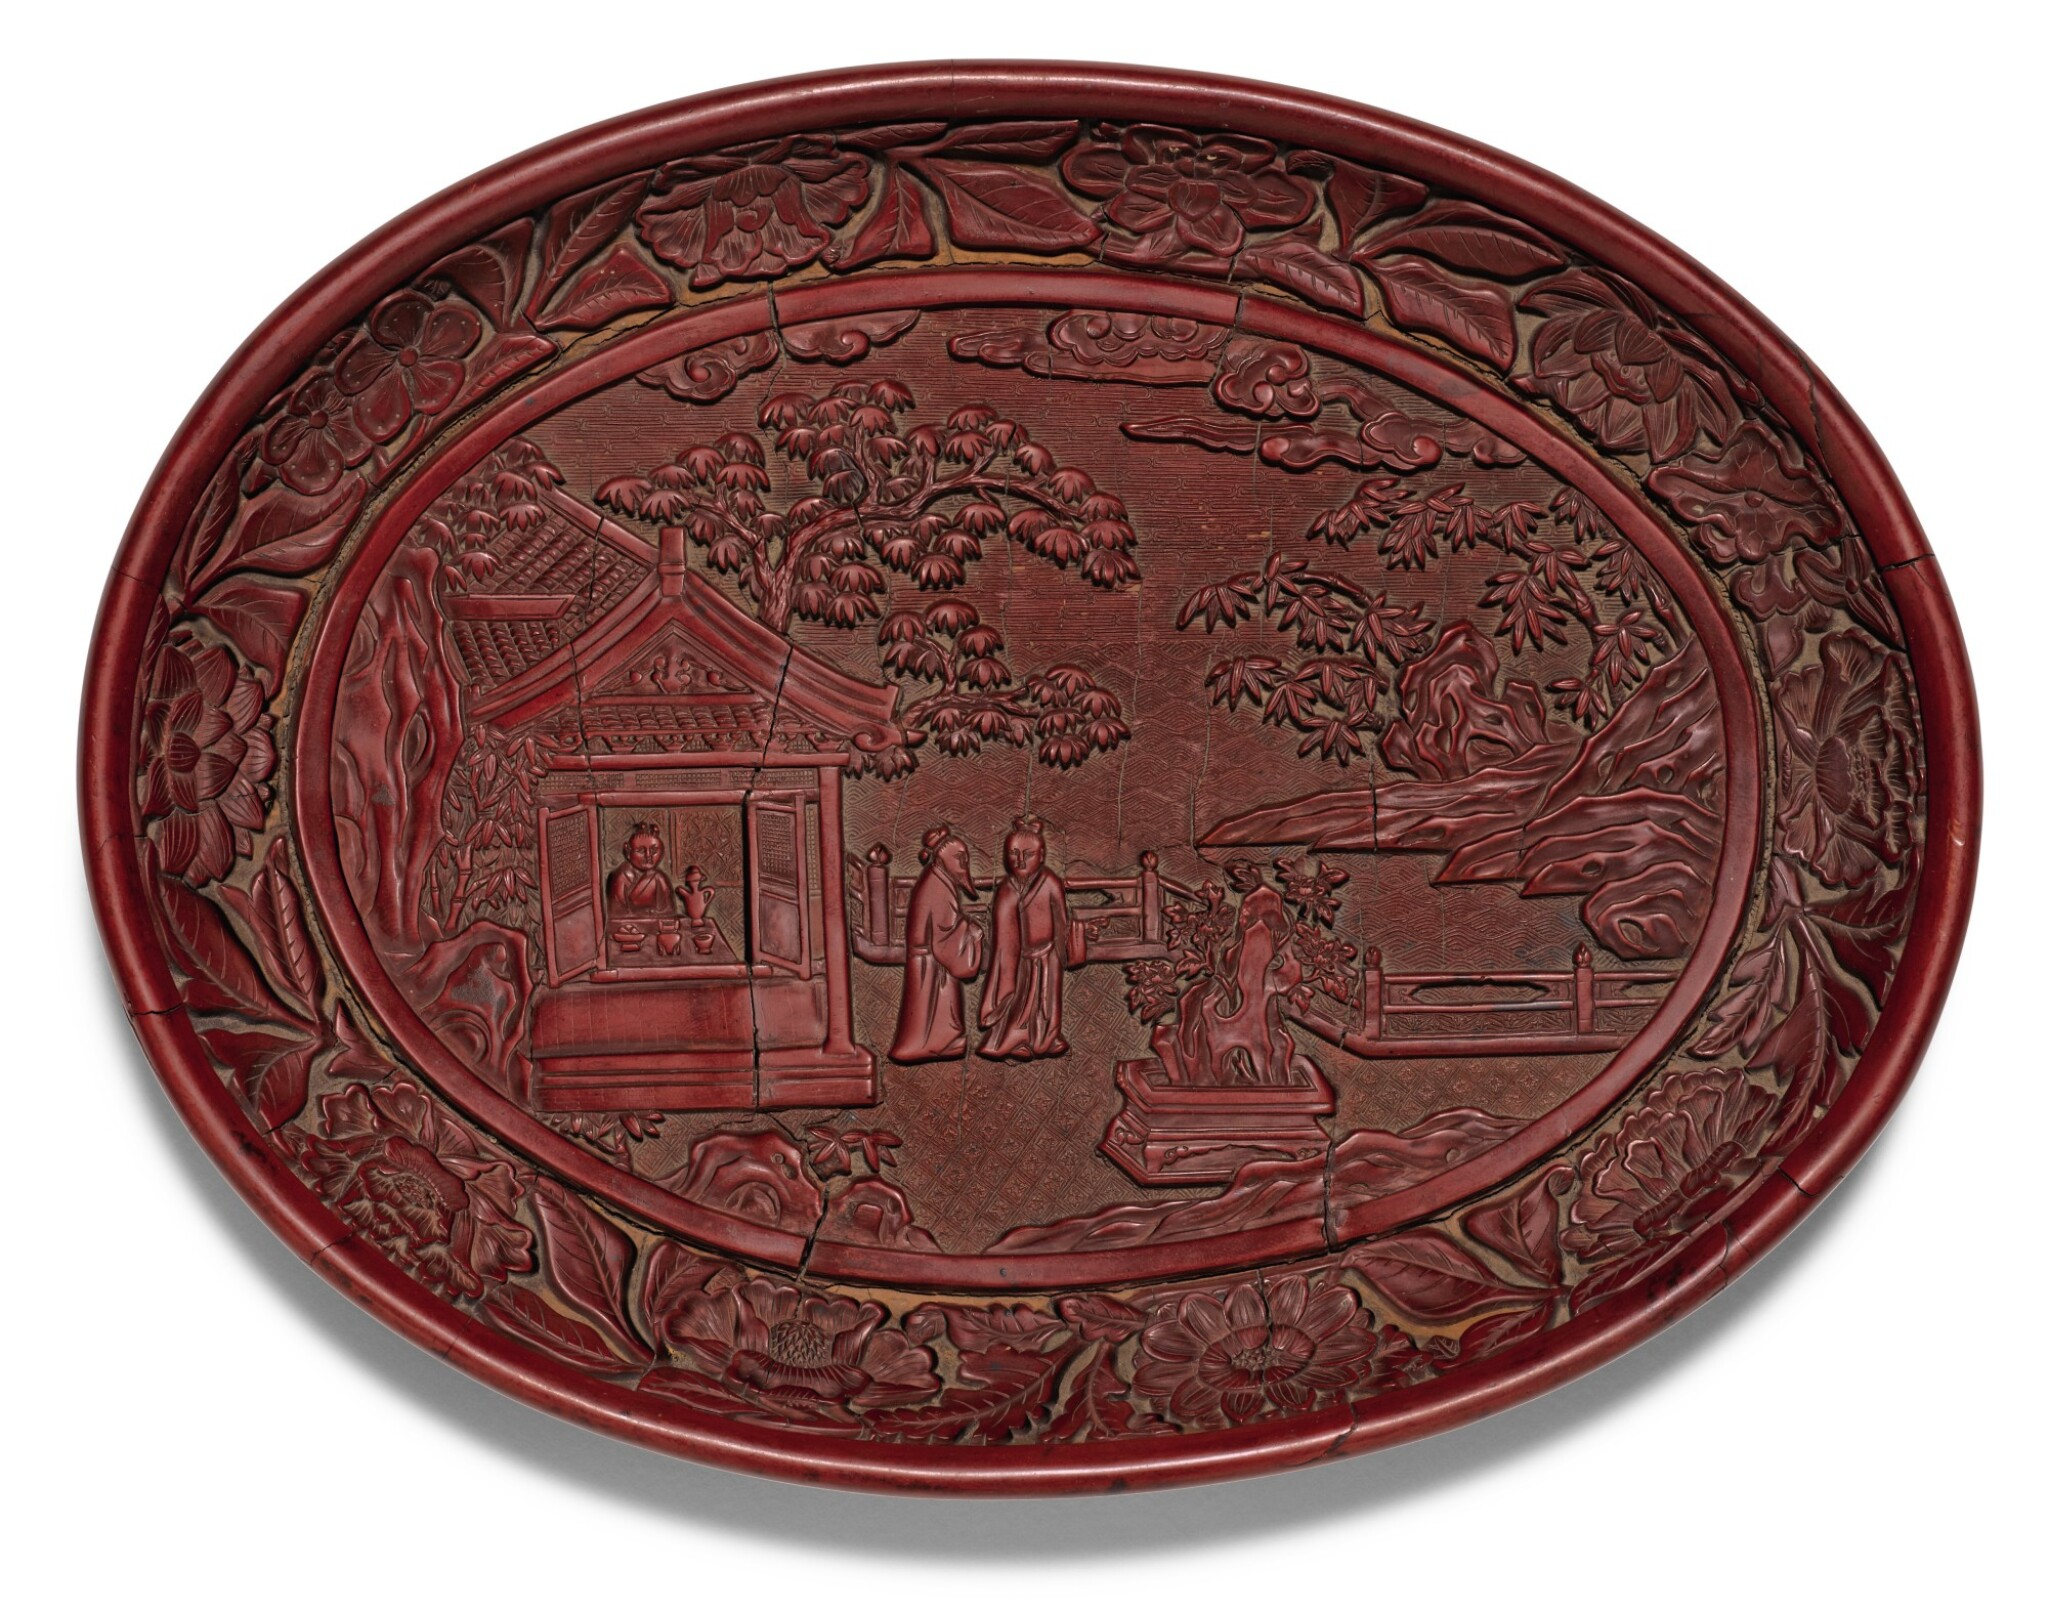 View 1 of Lot 139. A RARE AND FINELY CARVED CINNABAR LACQUER DISH YONGLE MARK AND PERIOD | 明永樂 剔紅賞石圖橢圓盤 《大明永樂年製》款.